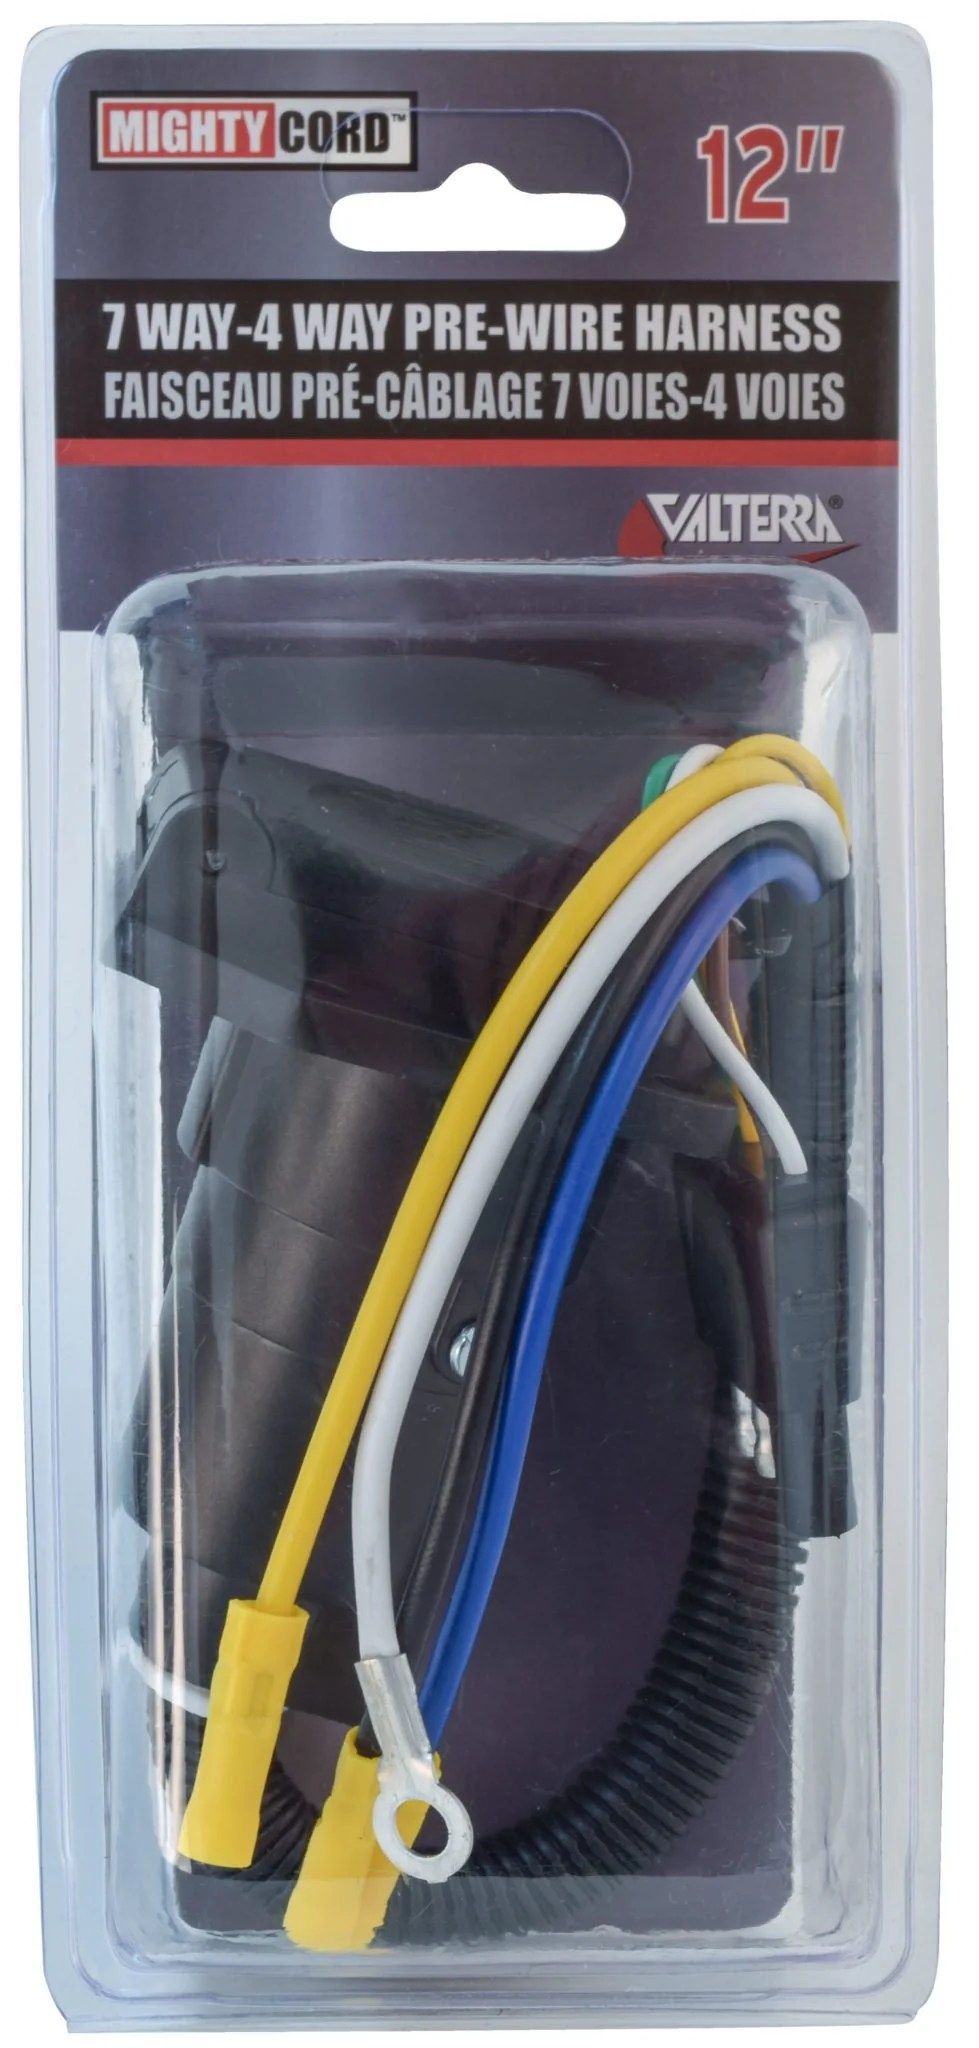 hight resolution of mighty cord 7 way to 4 way pre wire harness 12